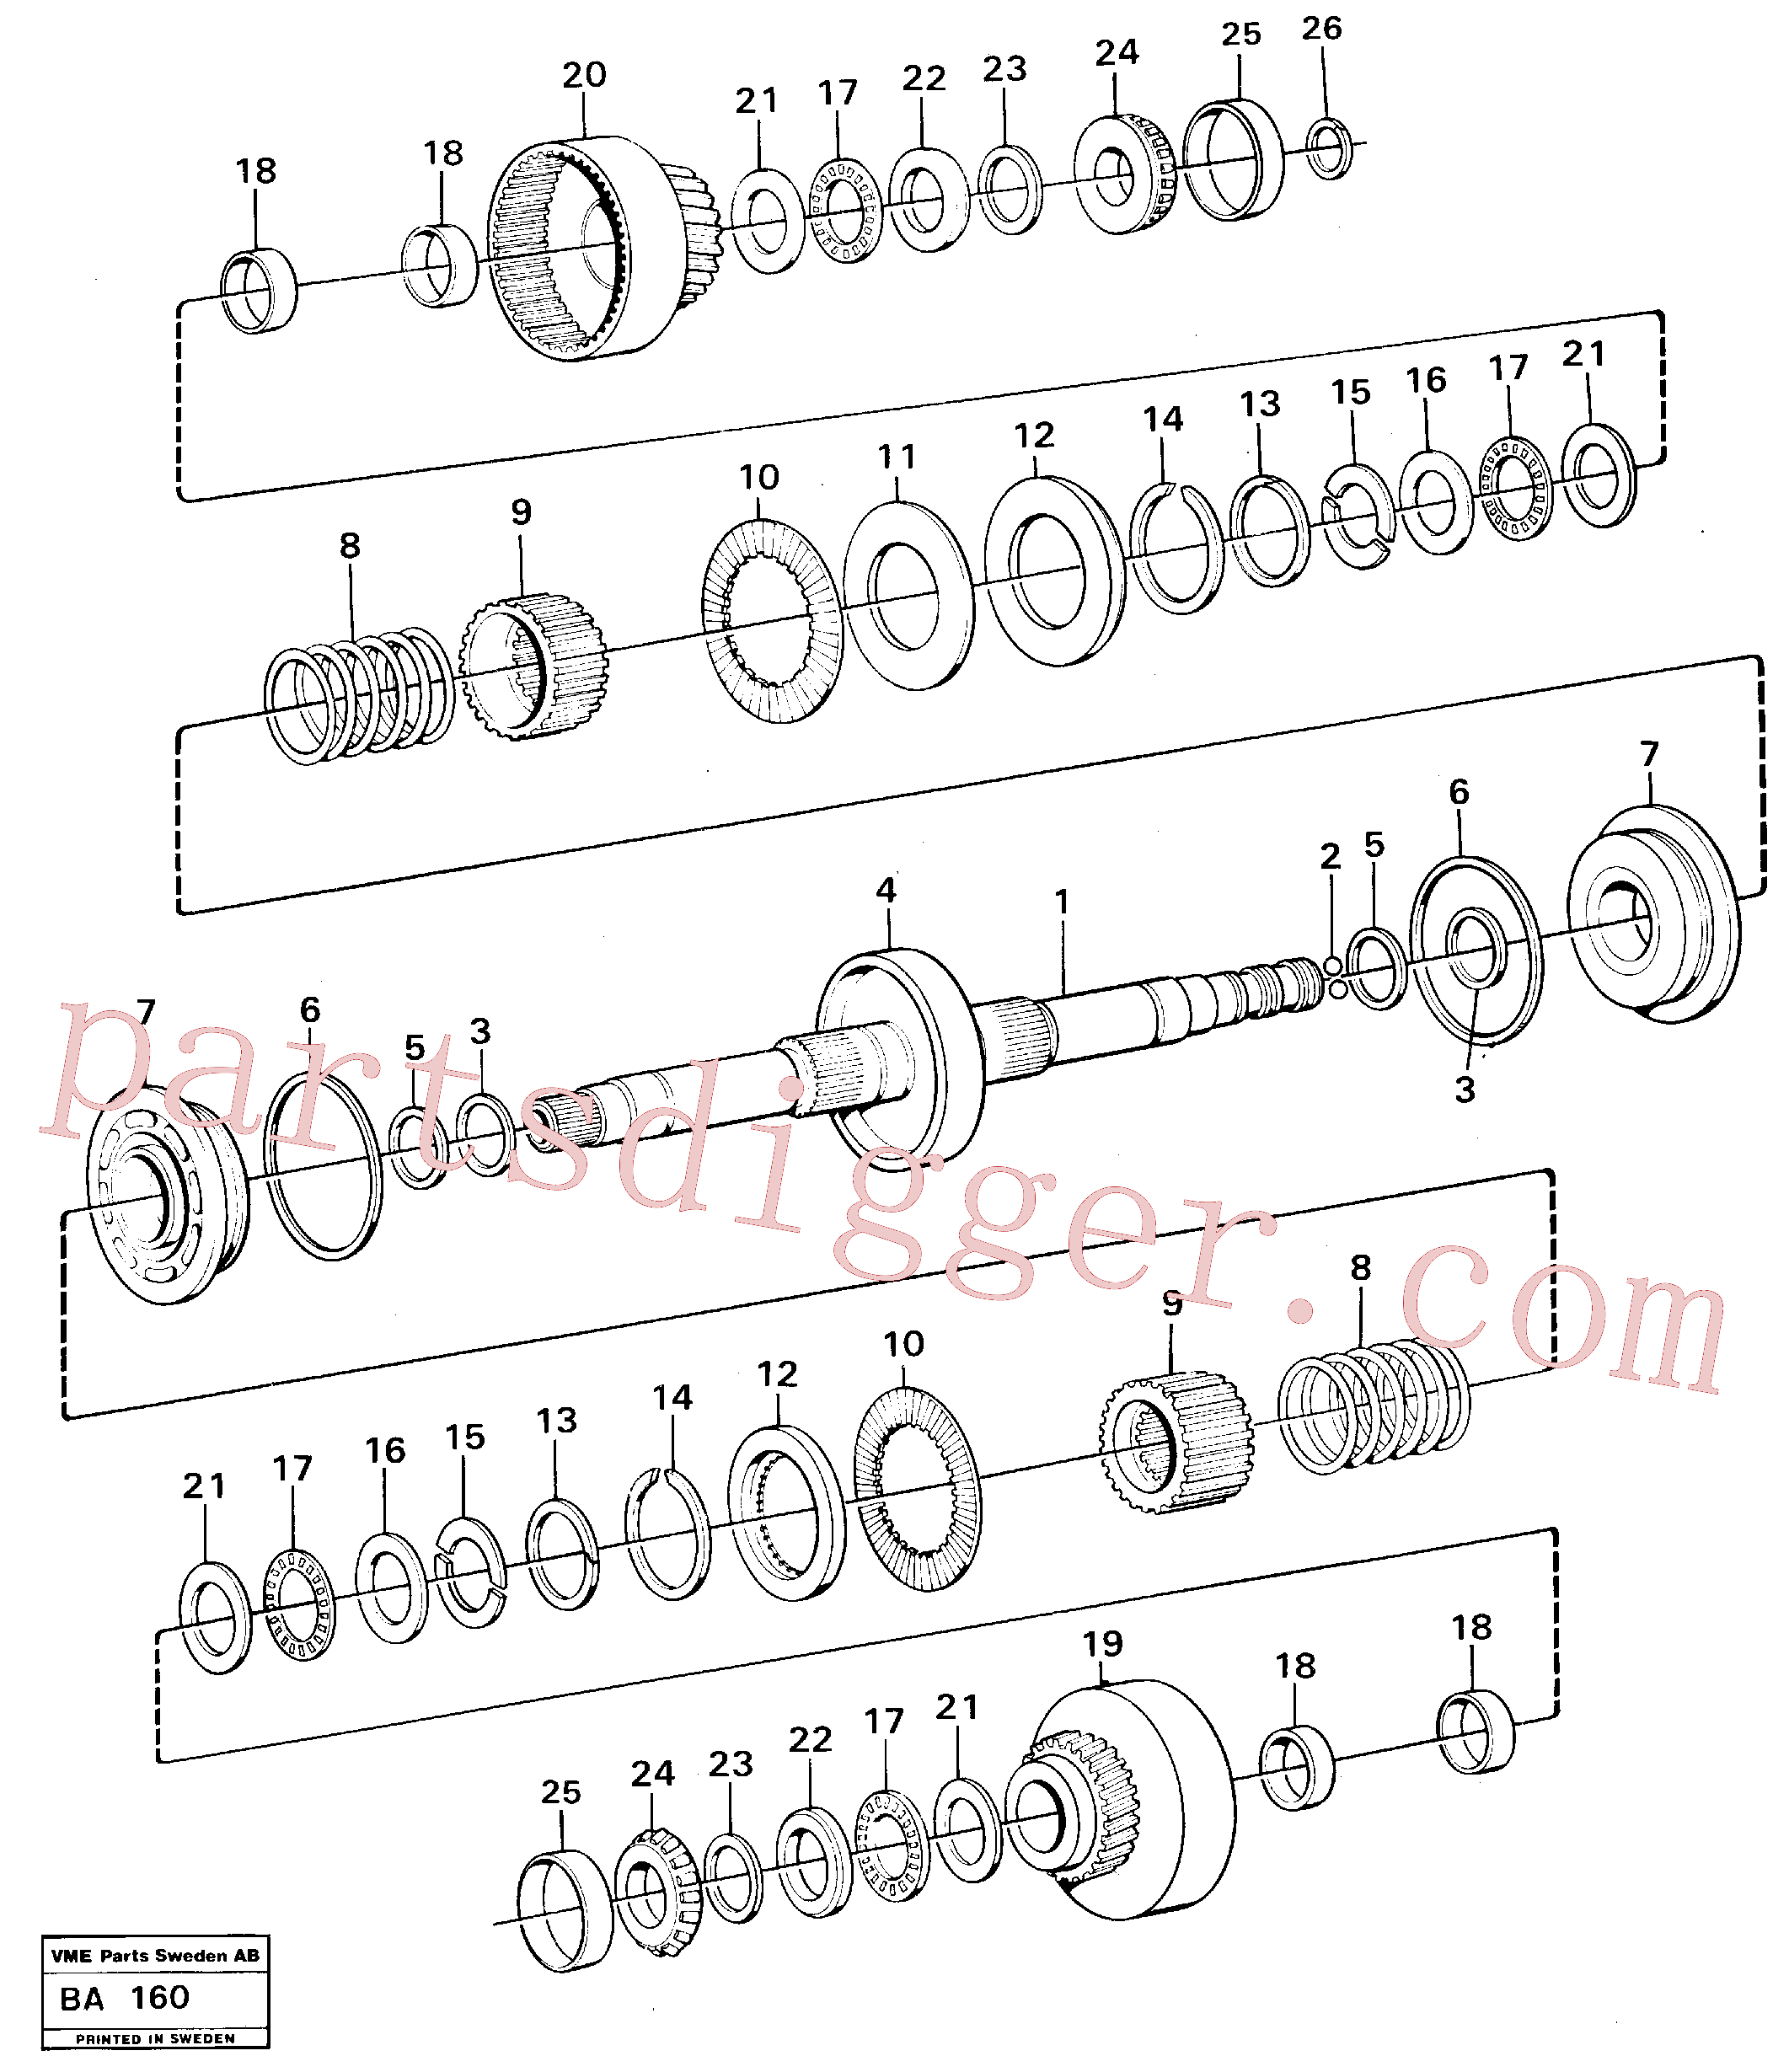 VOE4720805 for Volvo Clutches forward and reverse(BA160 assembly)